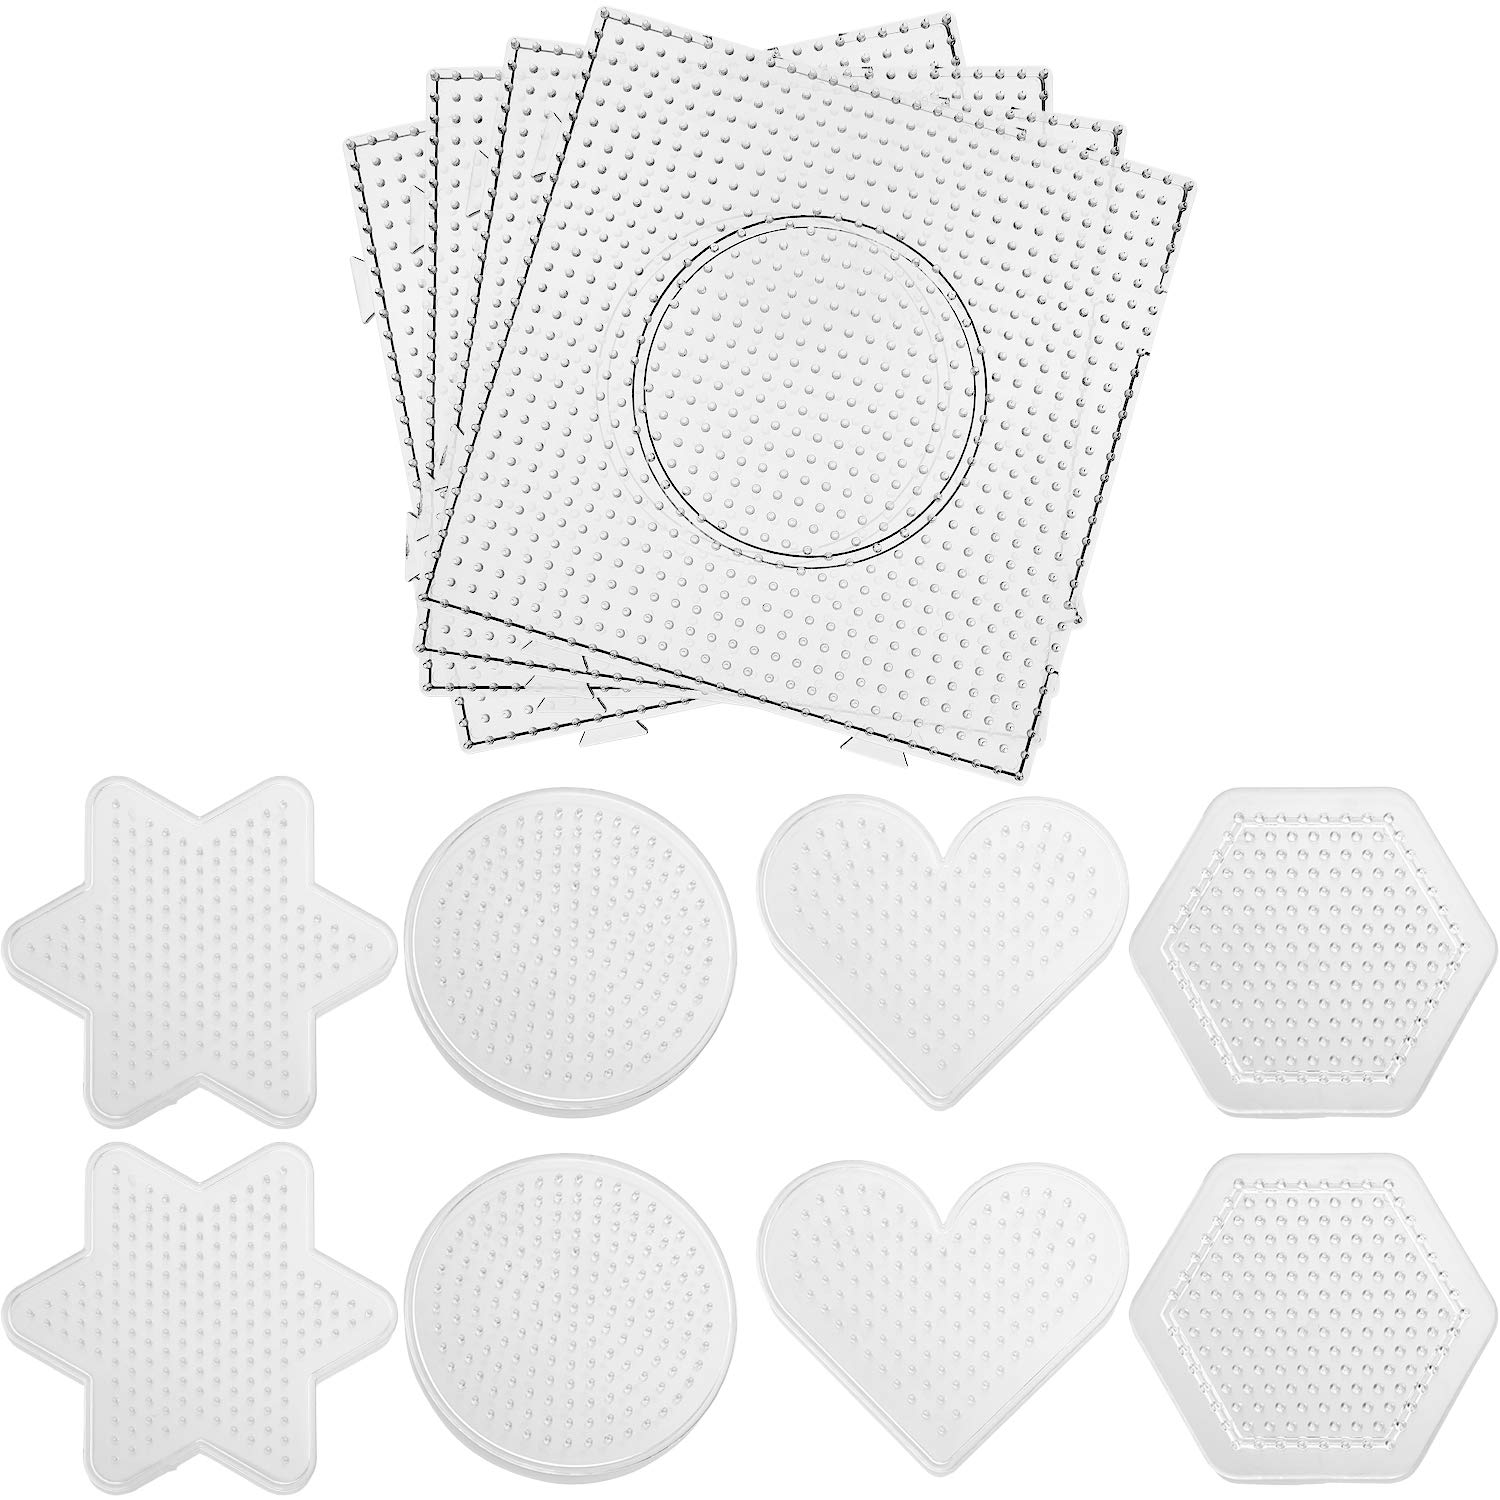 SATINIOR 12 Pieces 5 mm Fuse Beads Boards Clear Plastic Pegboards for Kids Craft Beads Arts Projects, 5 Different Shapes